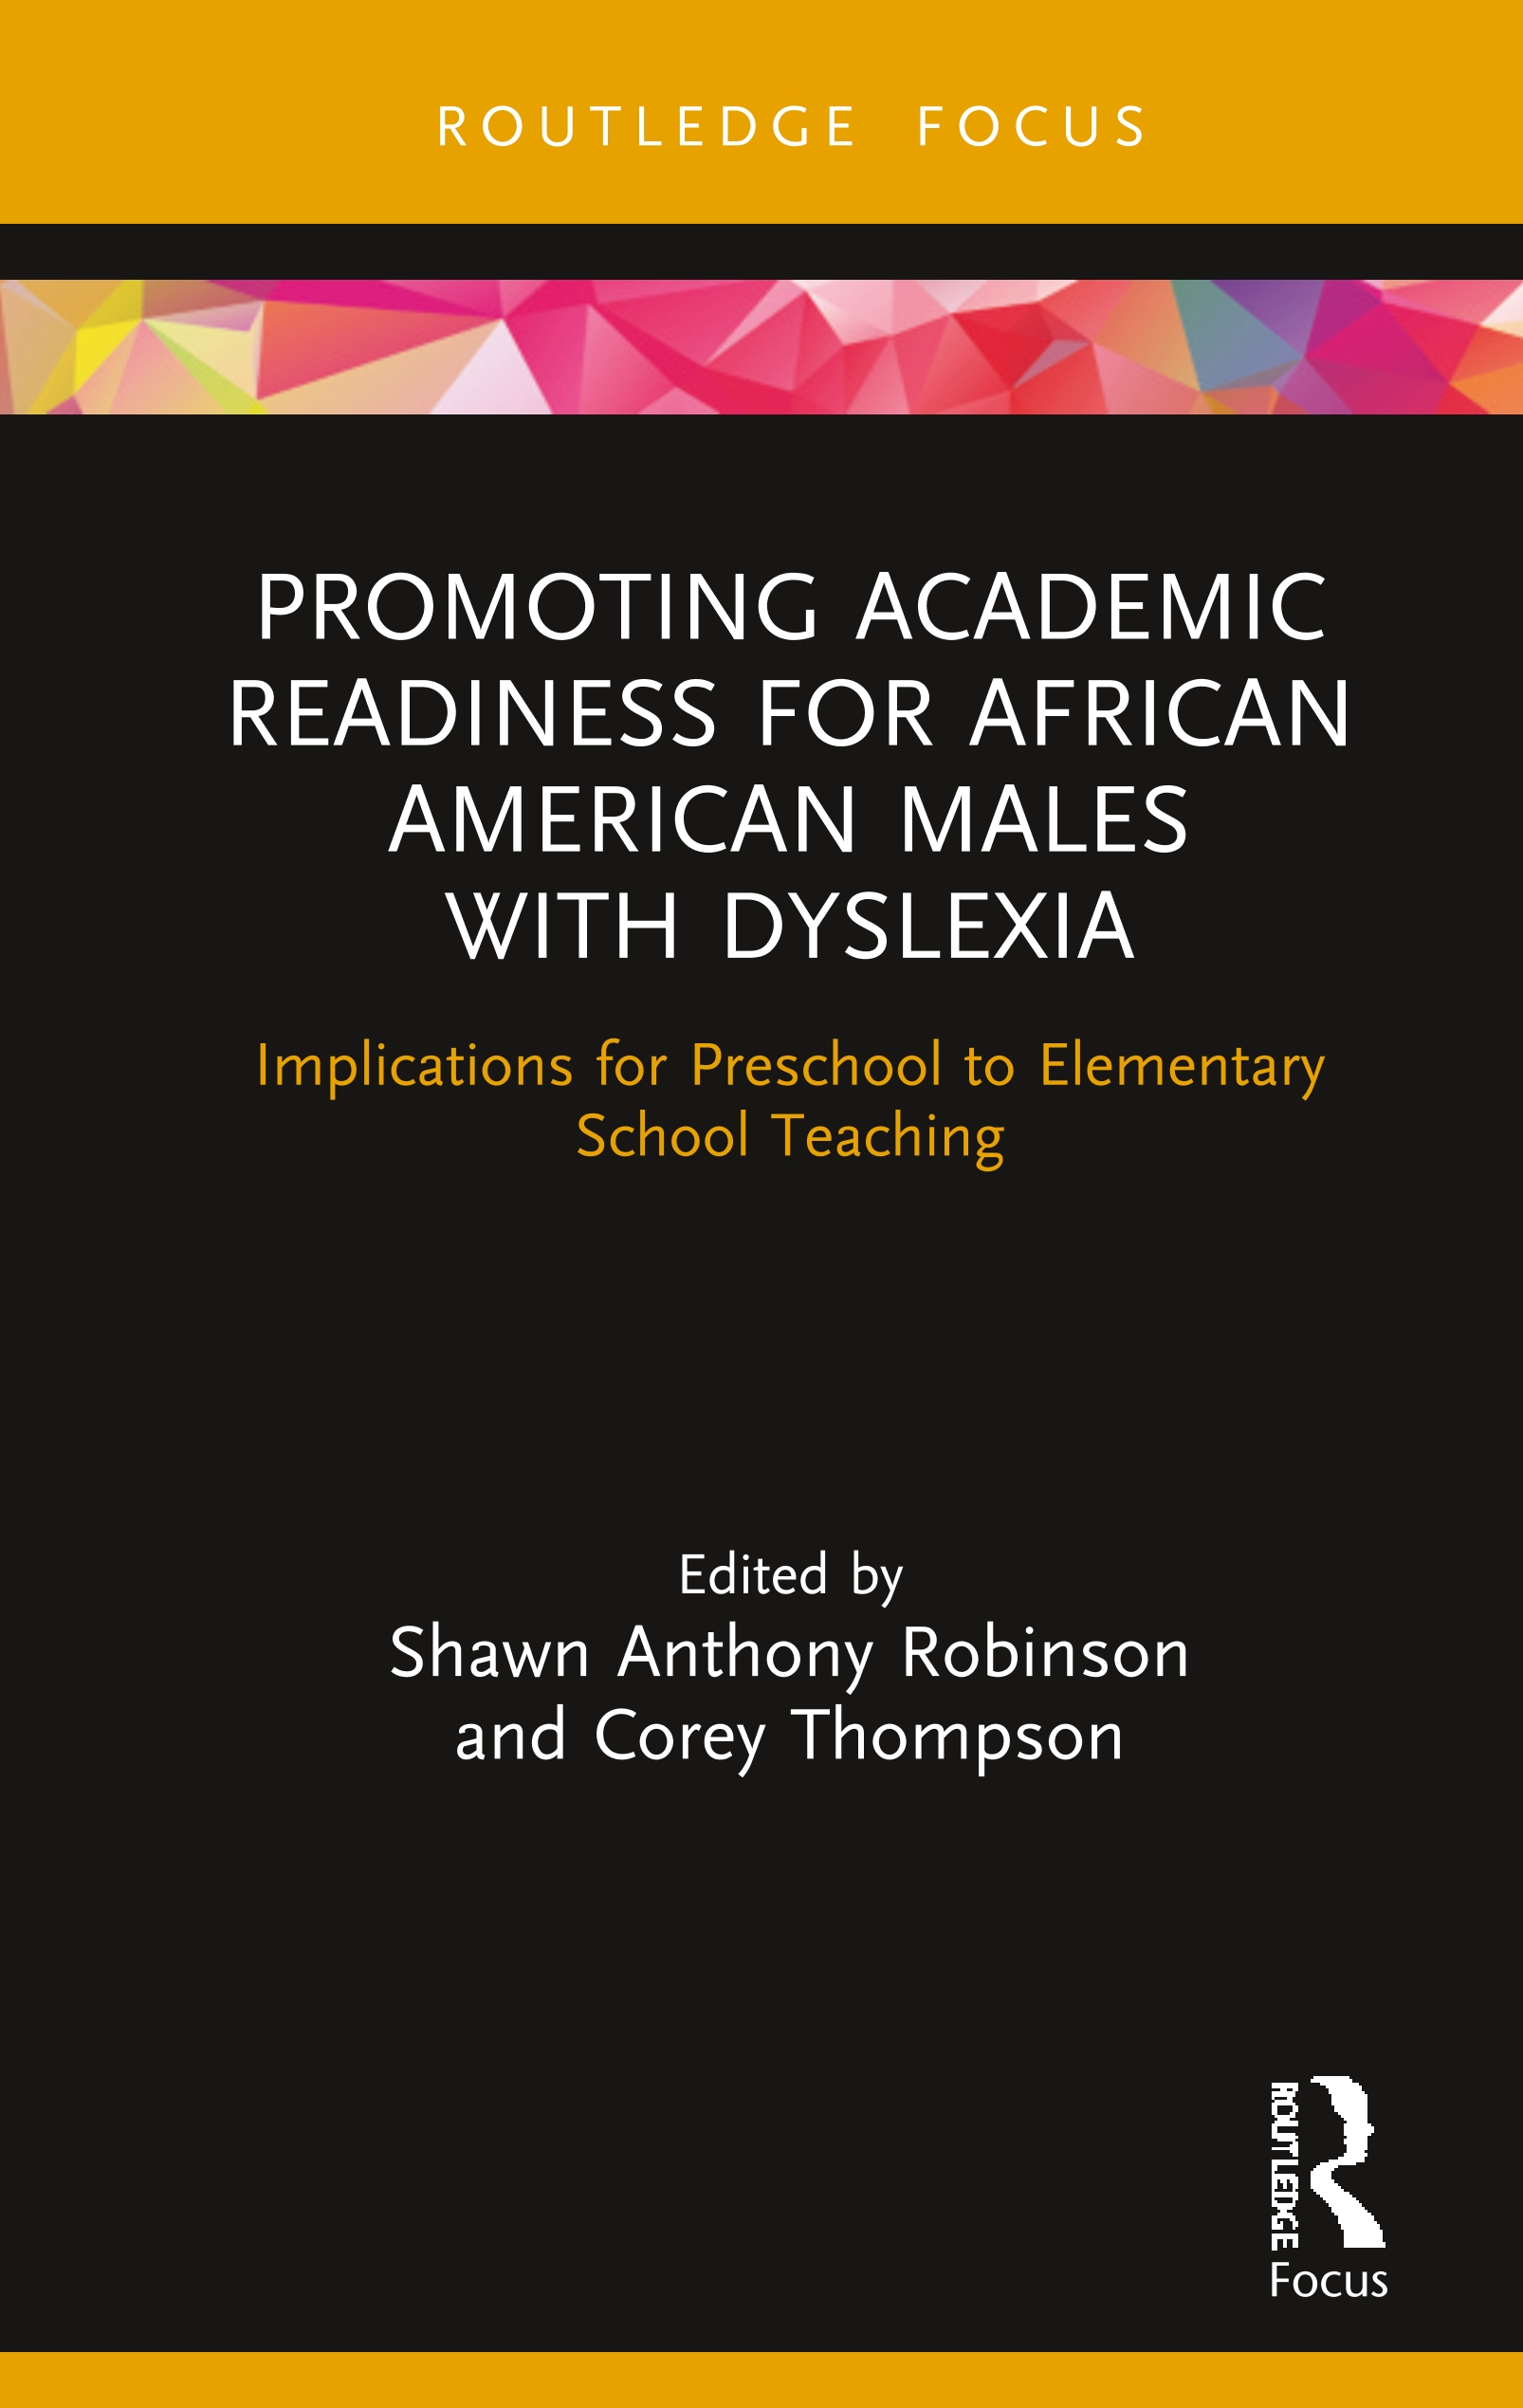 Promoting Academic Readiness for African American Males with Dyslexia: Implications for Preschool to Elementary School Teaching book cover